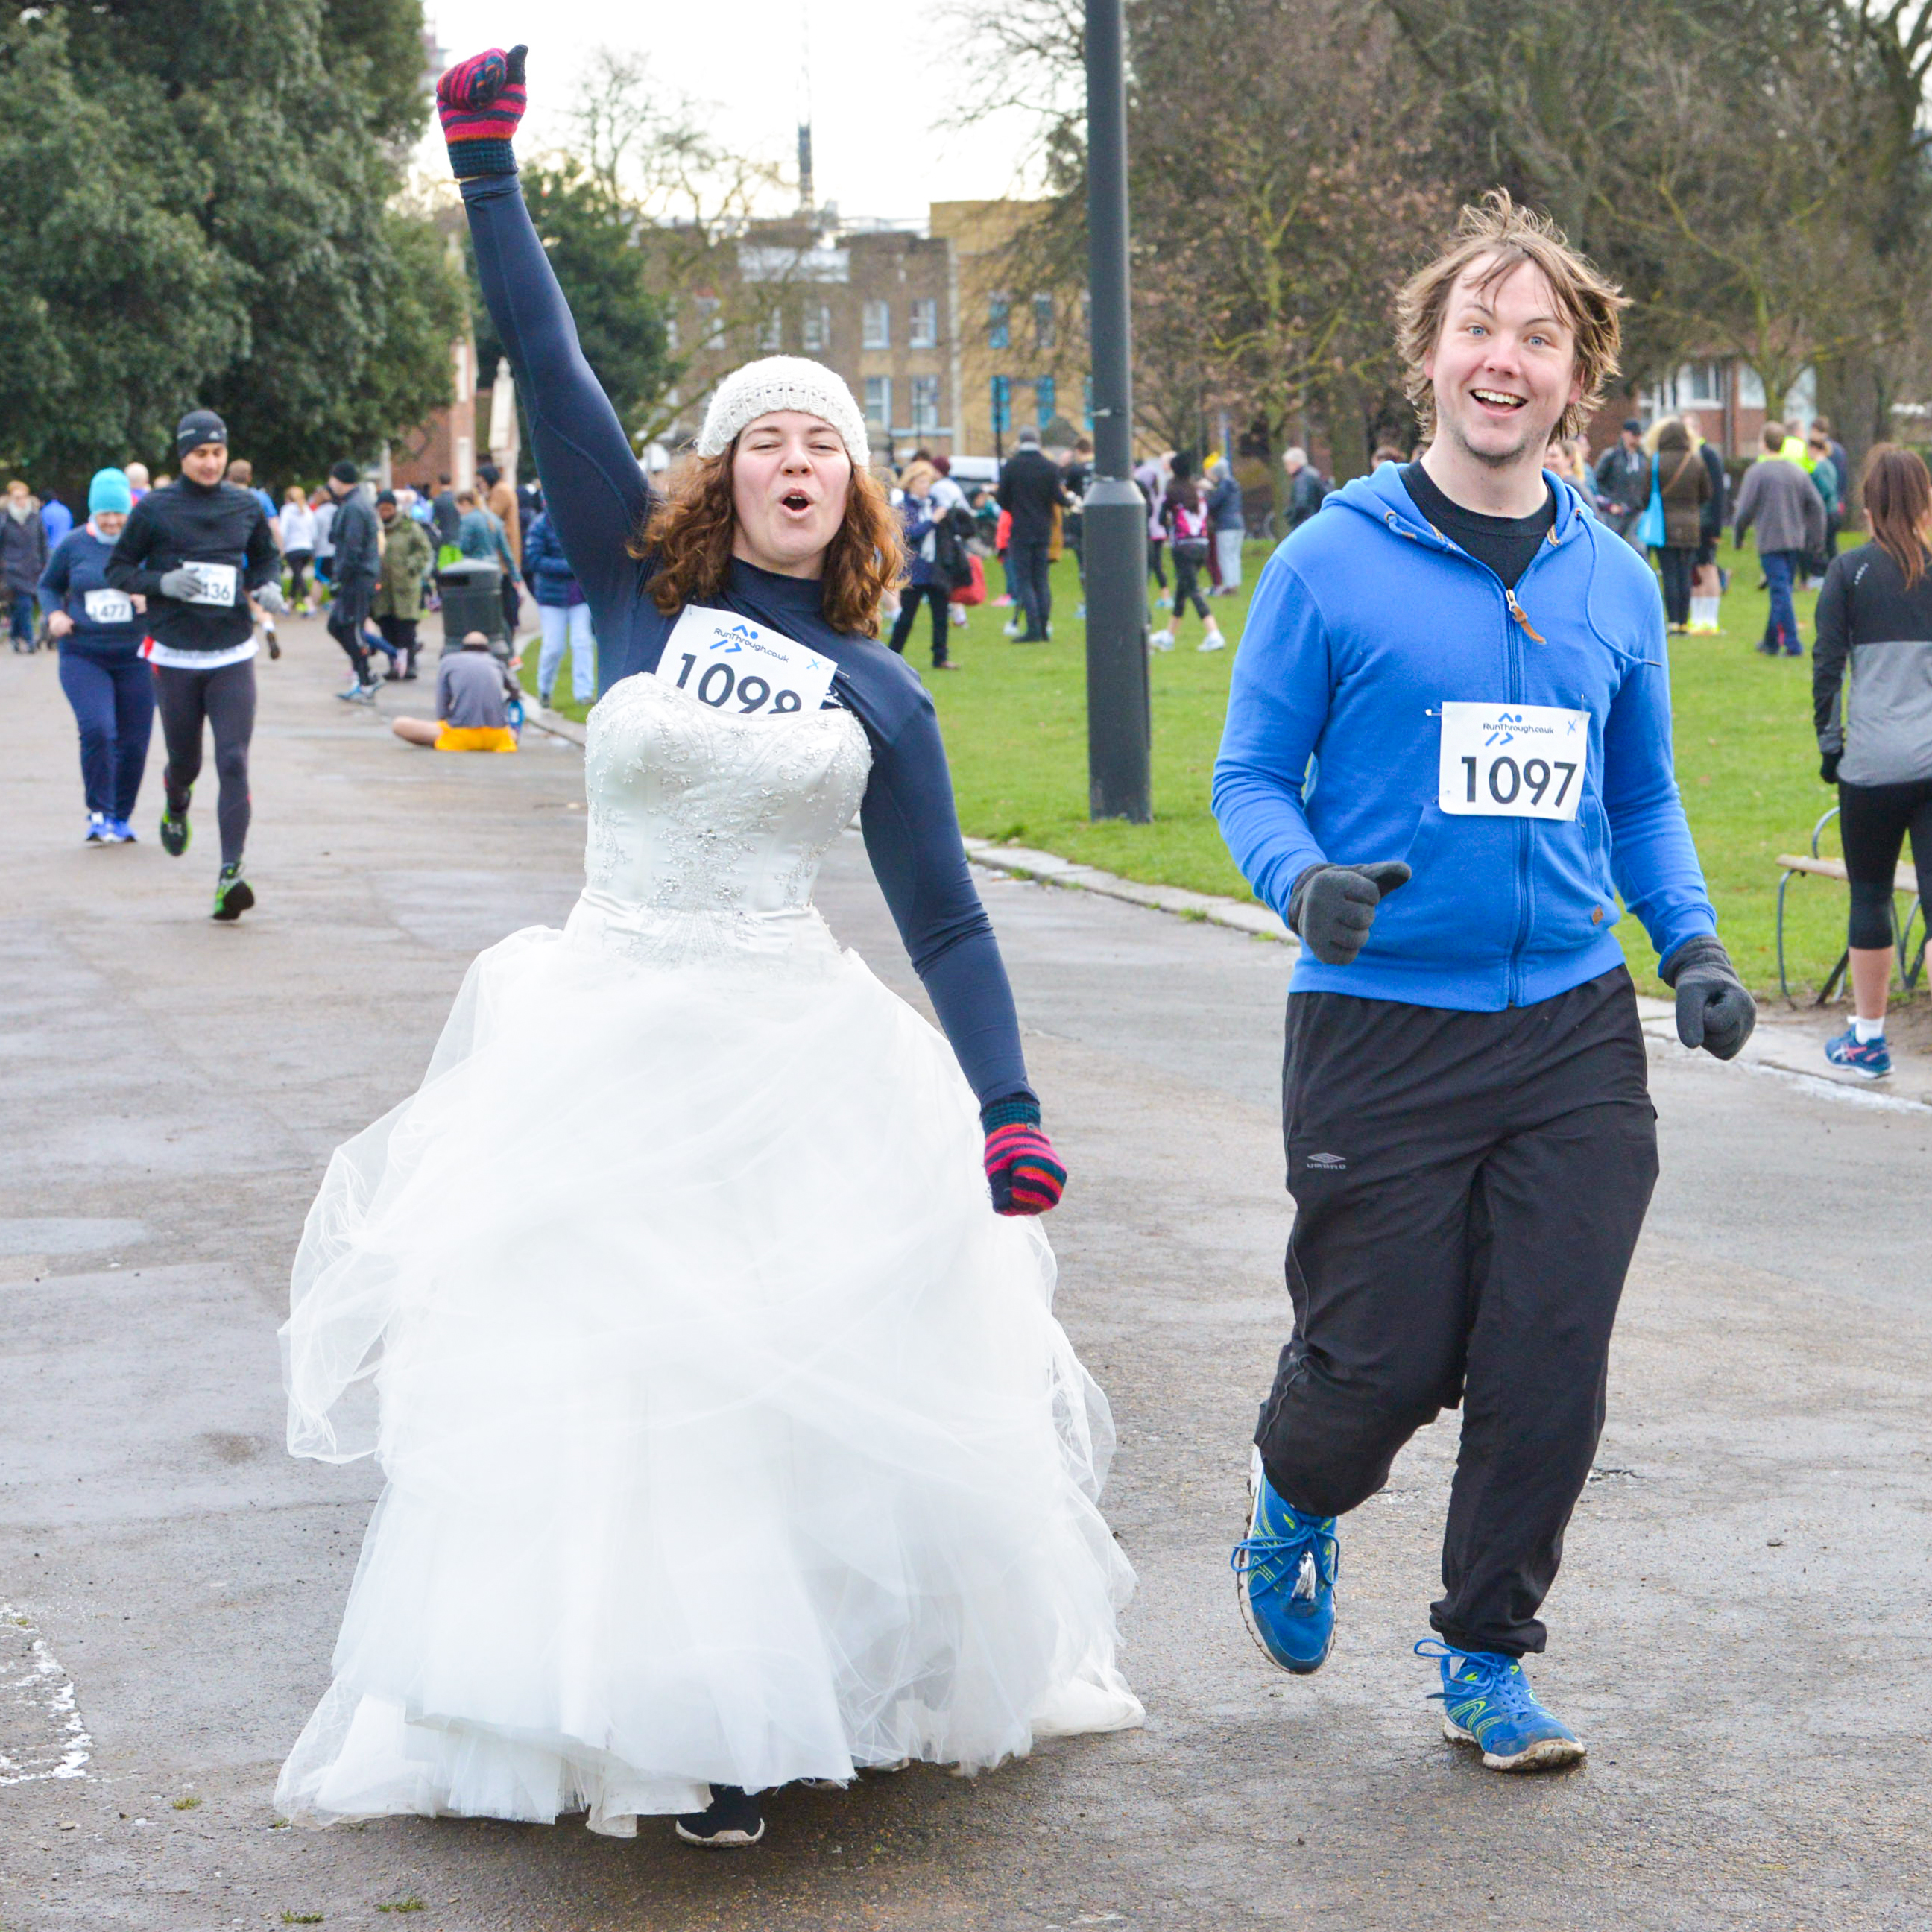 Runner Feature – Lucy & Dan's Wedding Quest